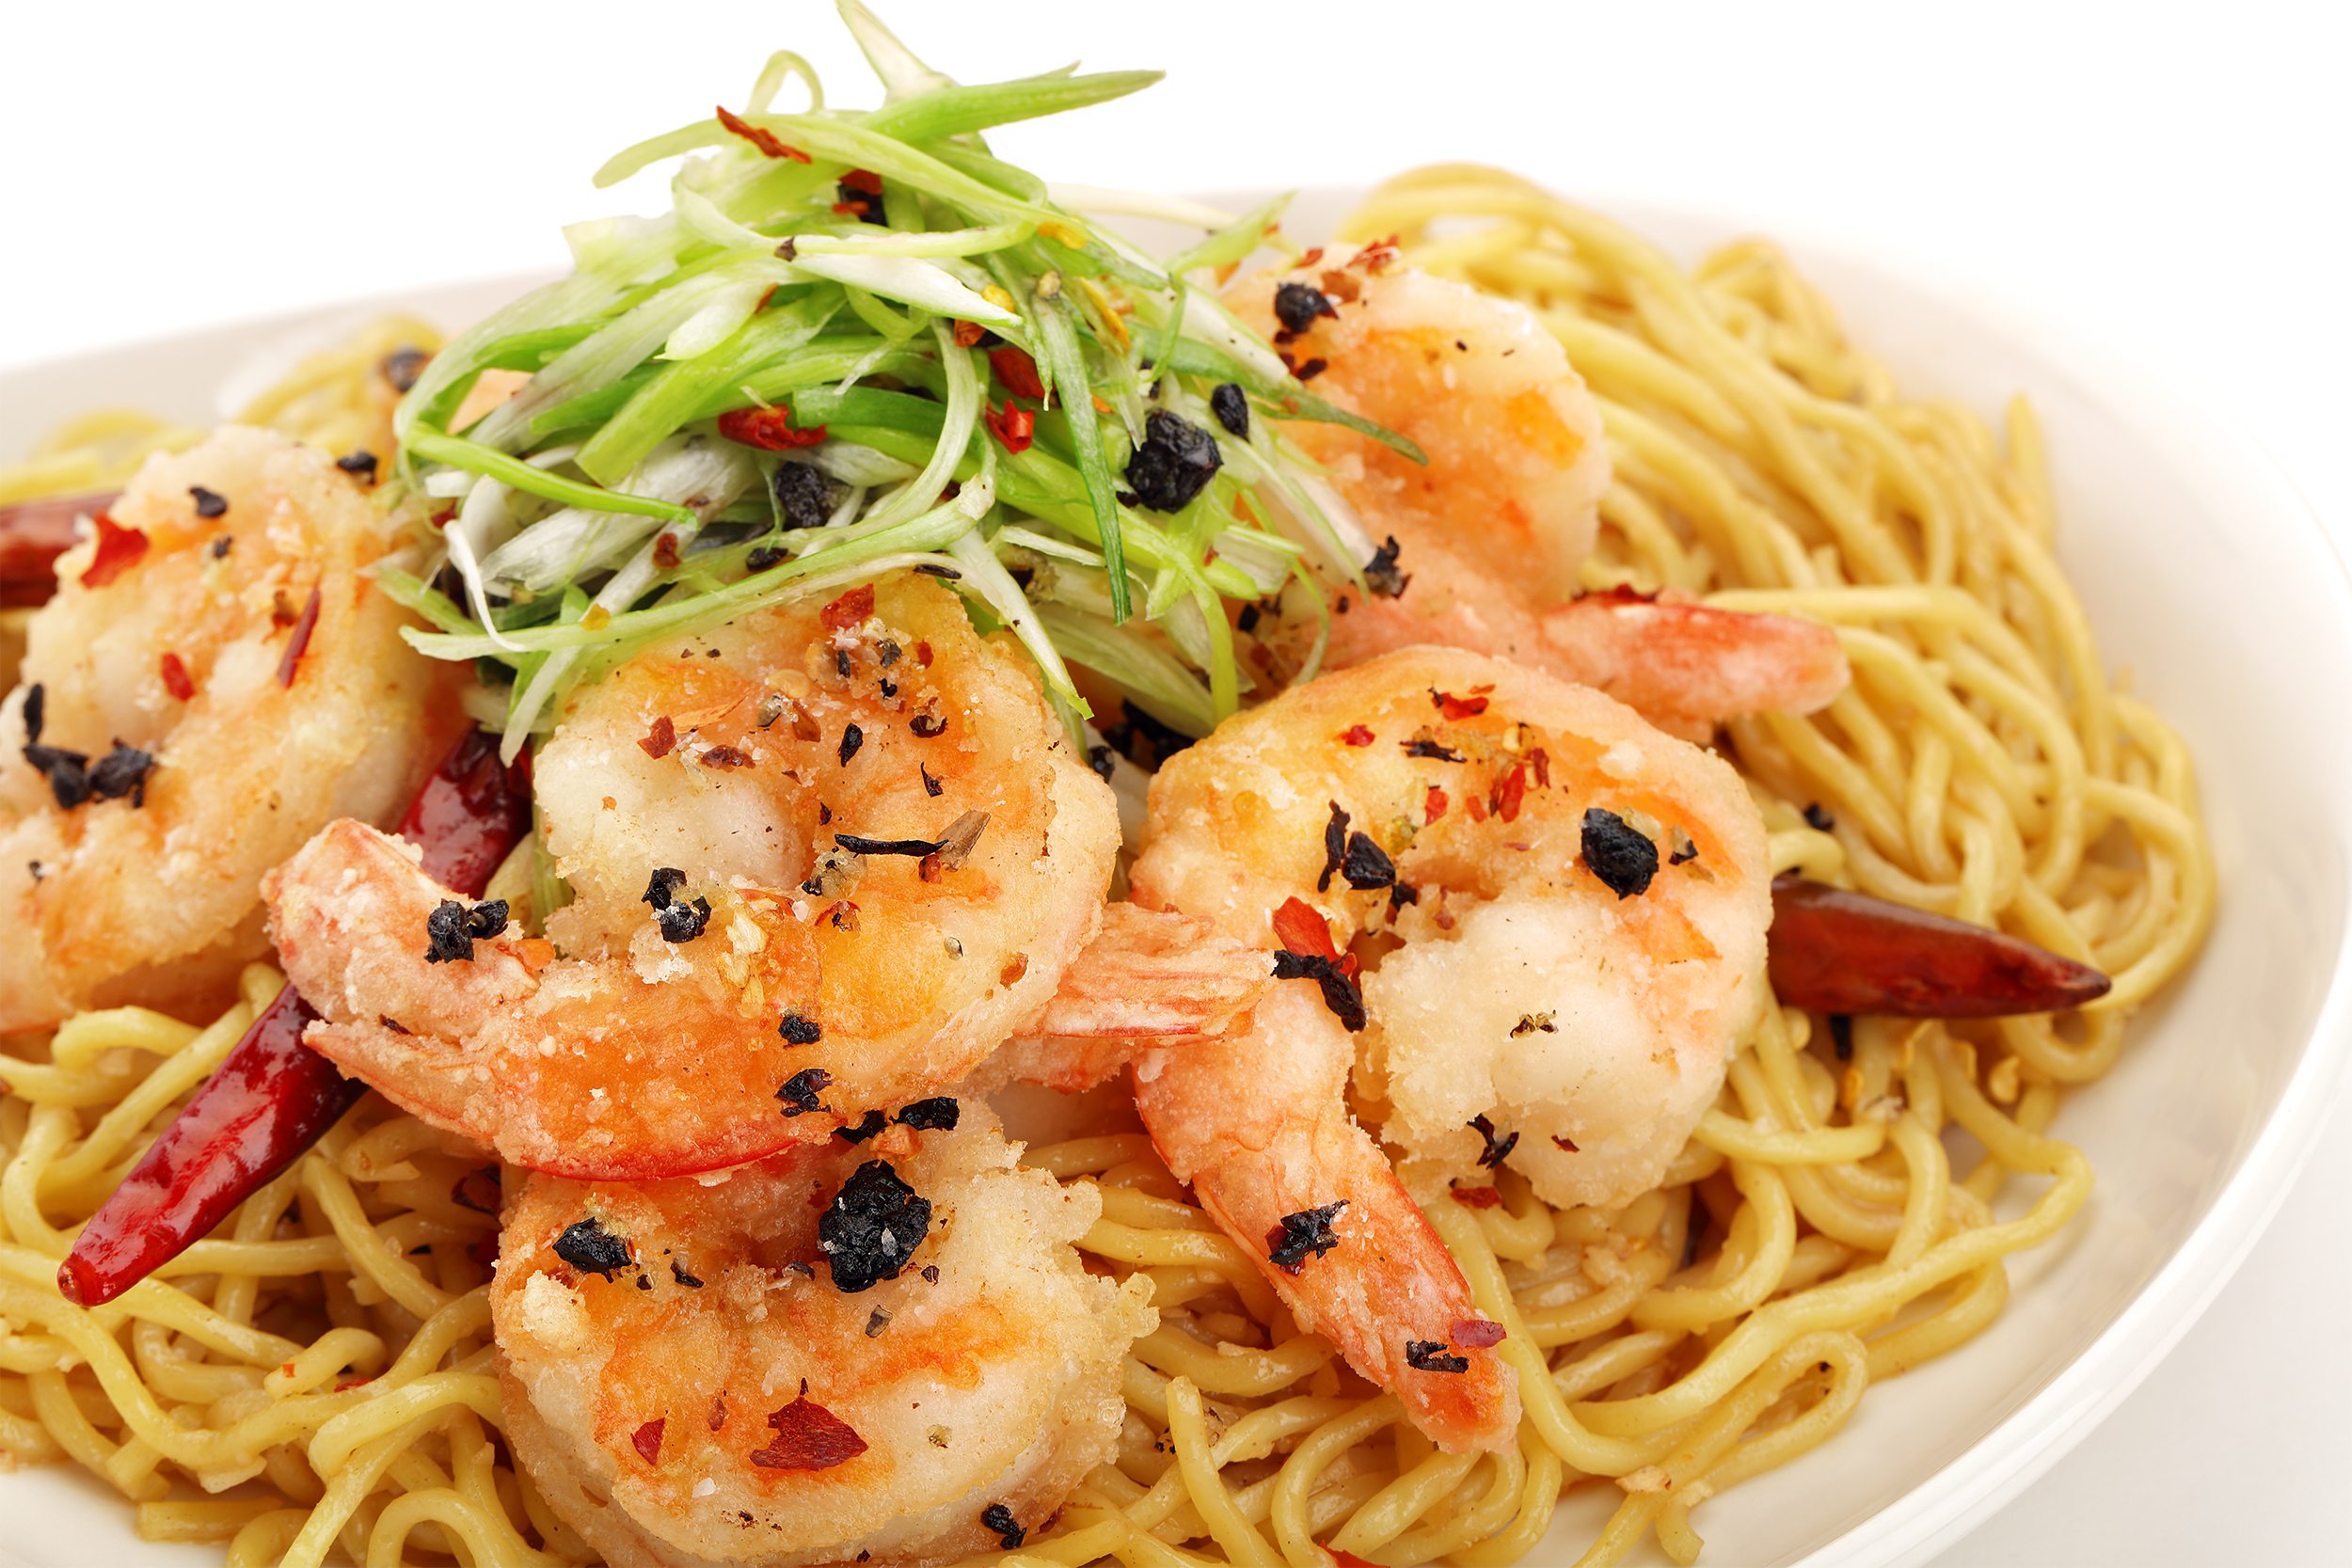 The Long Life Noodles and Prawns ix full of flavor with spices and ...